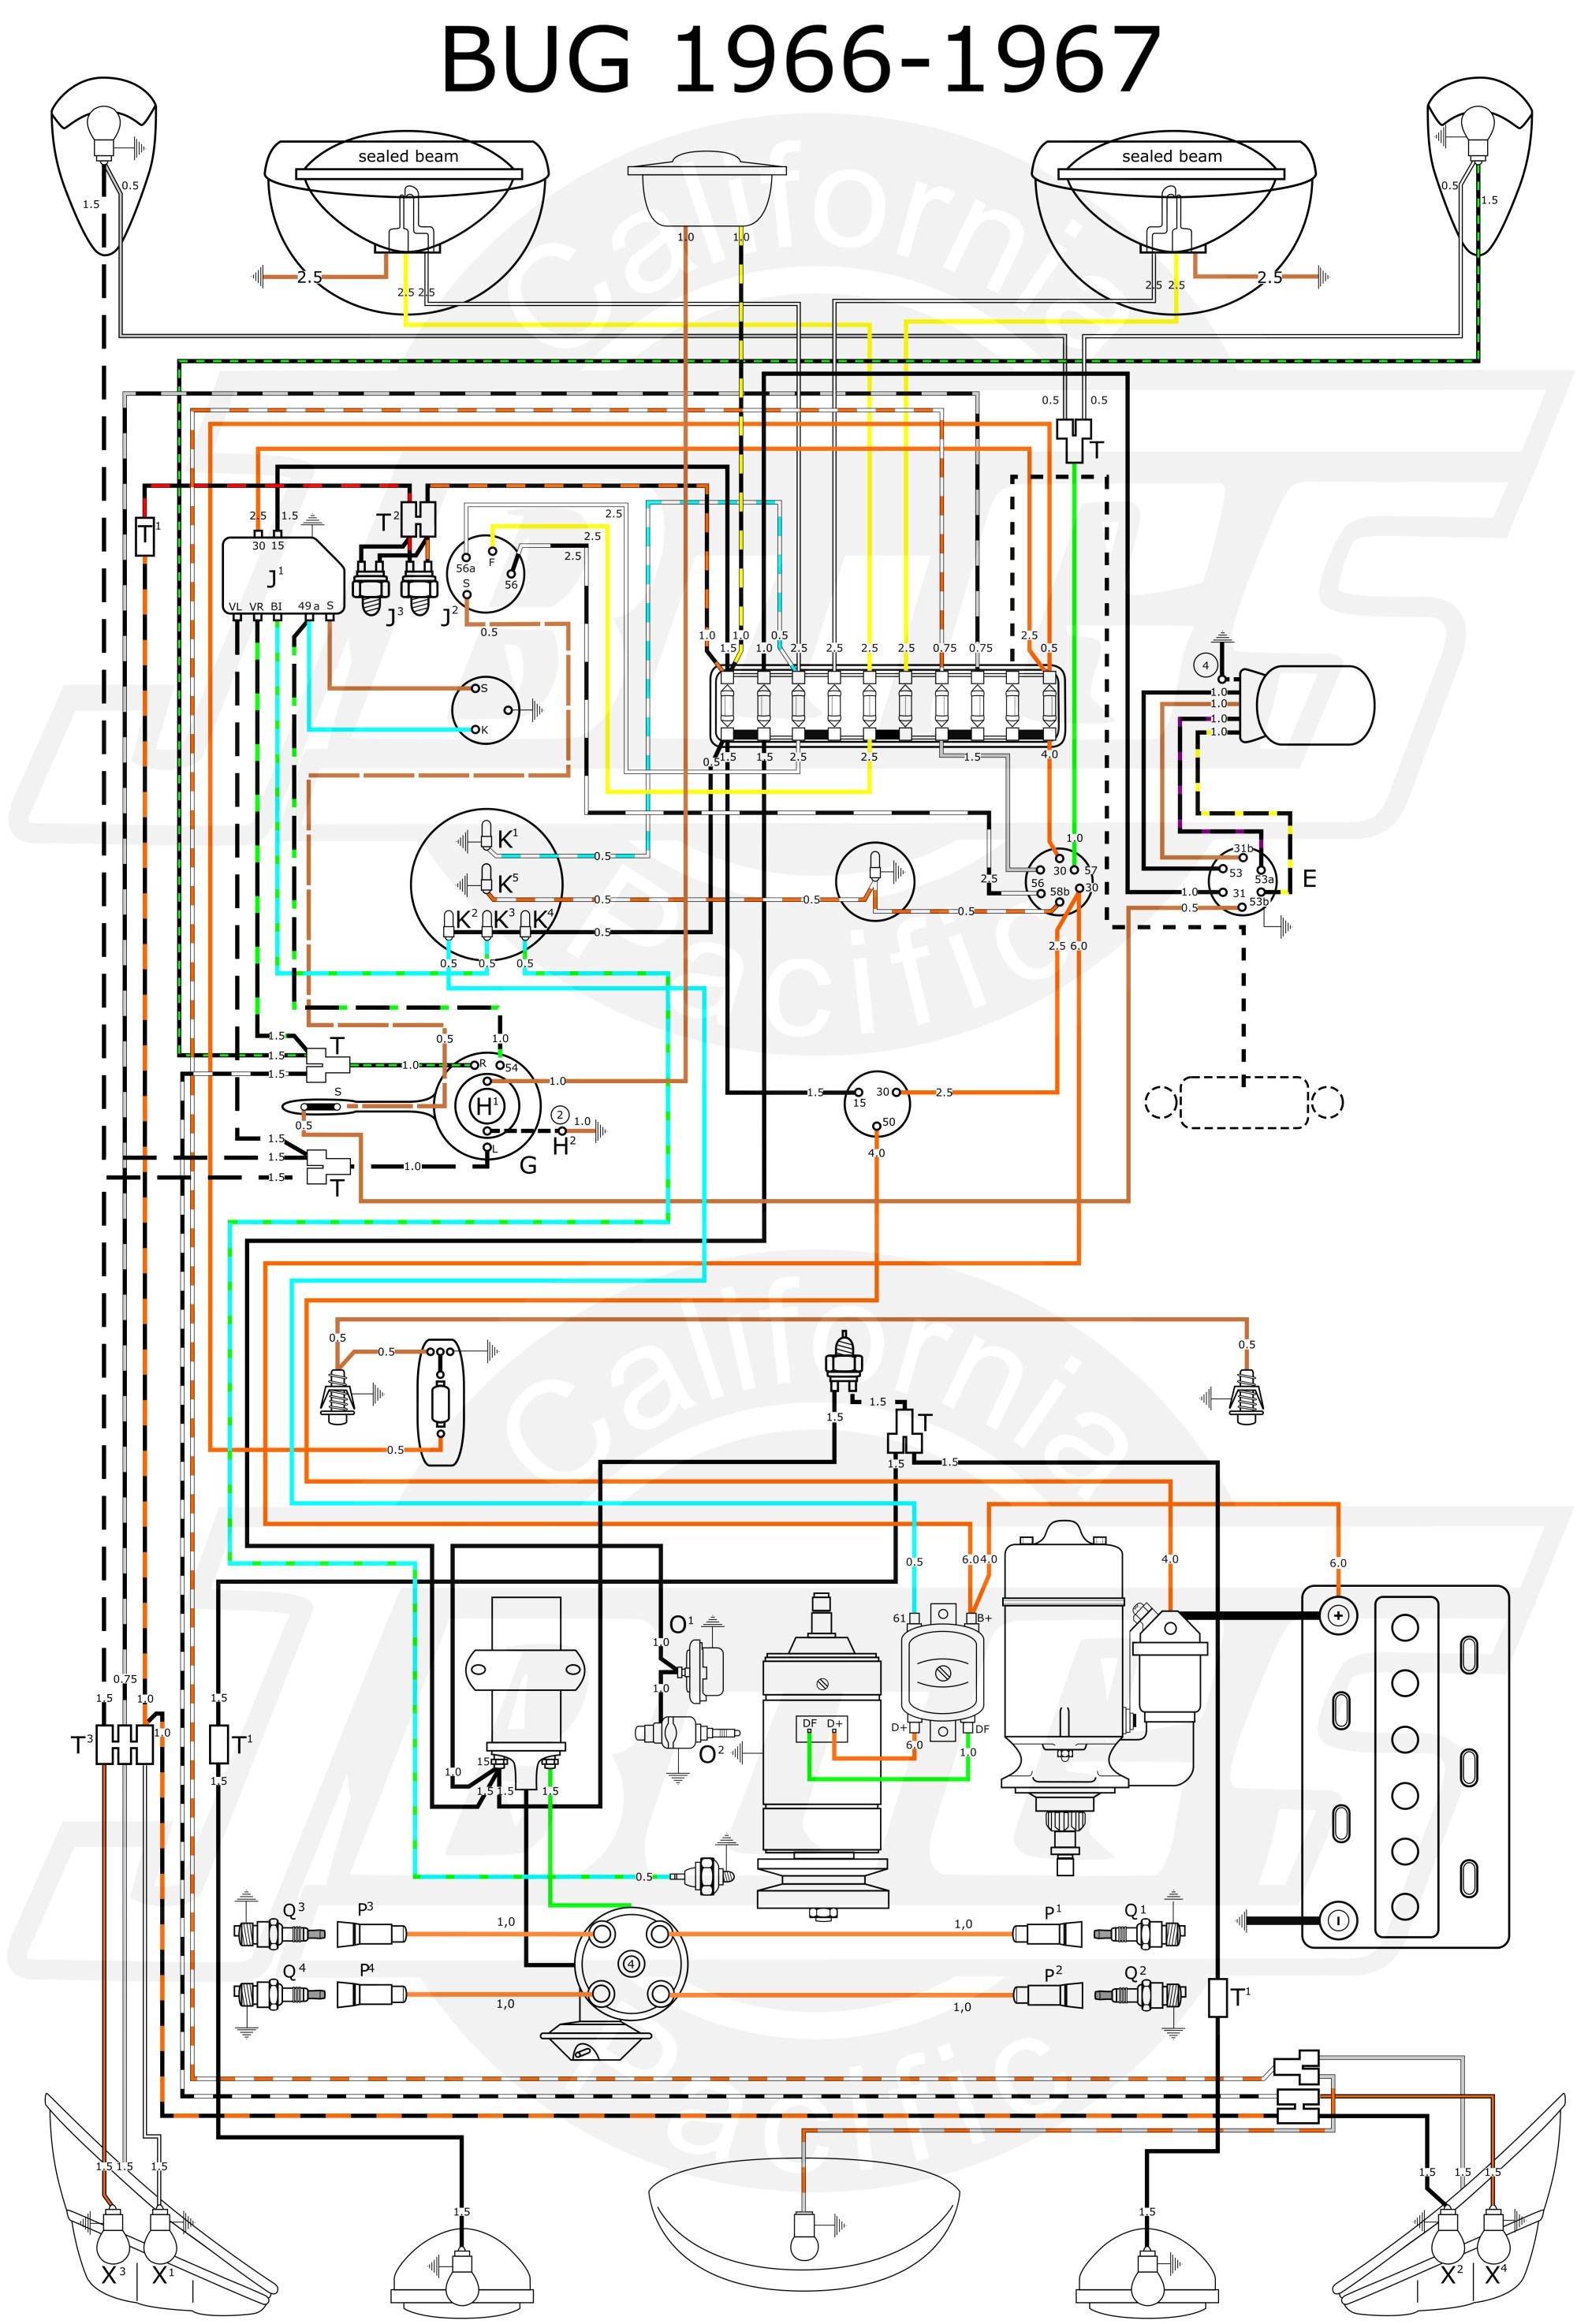 hight resolution of 66 vw wiring diagram my wiring diagramvw tech article 1966 67 wiring diagram 66 vw bus